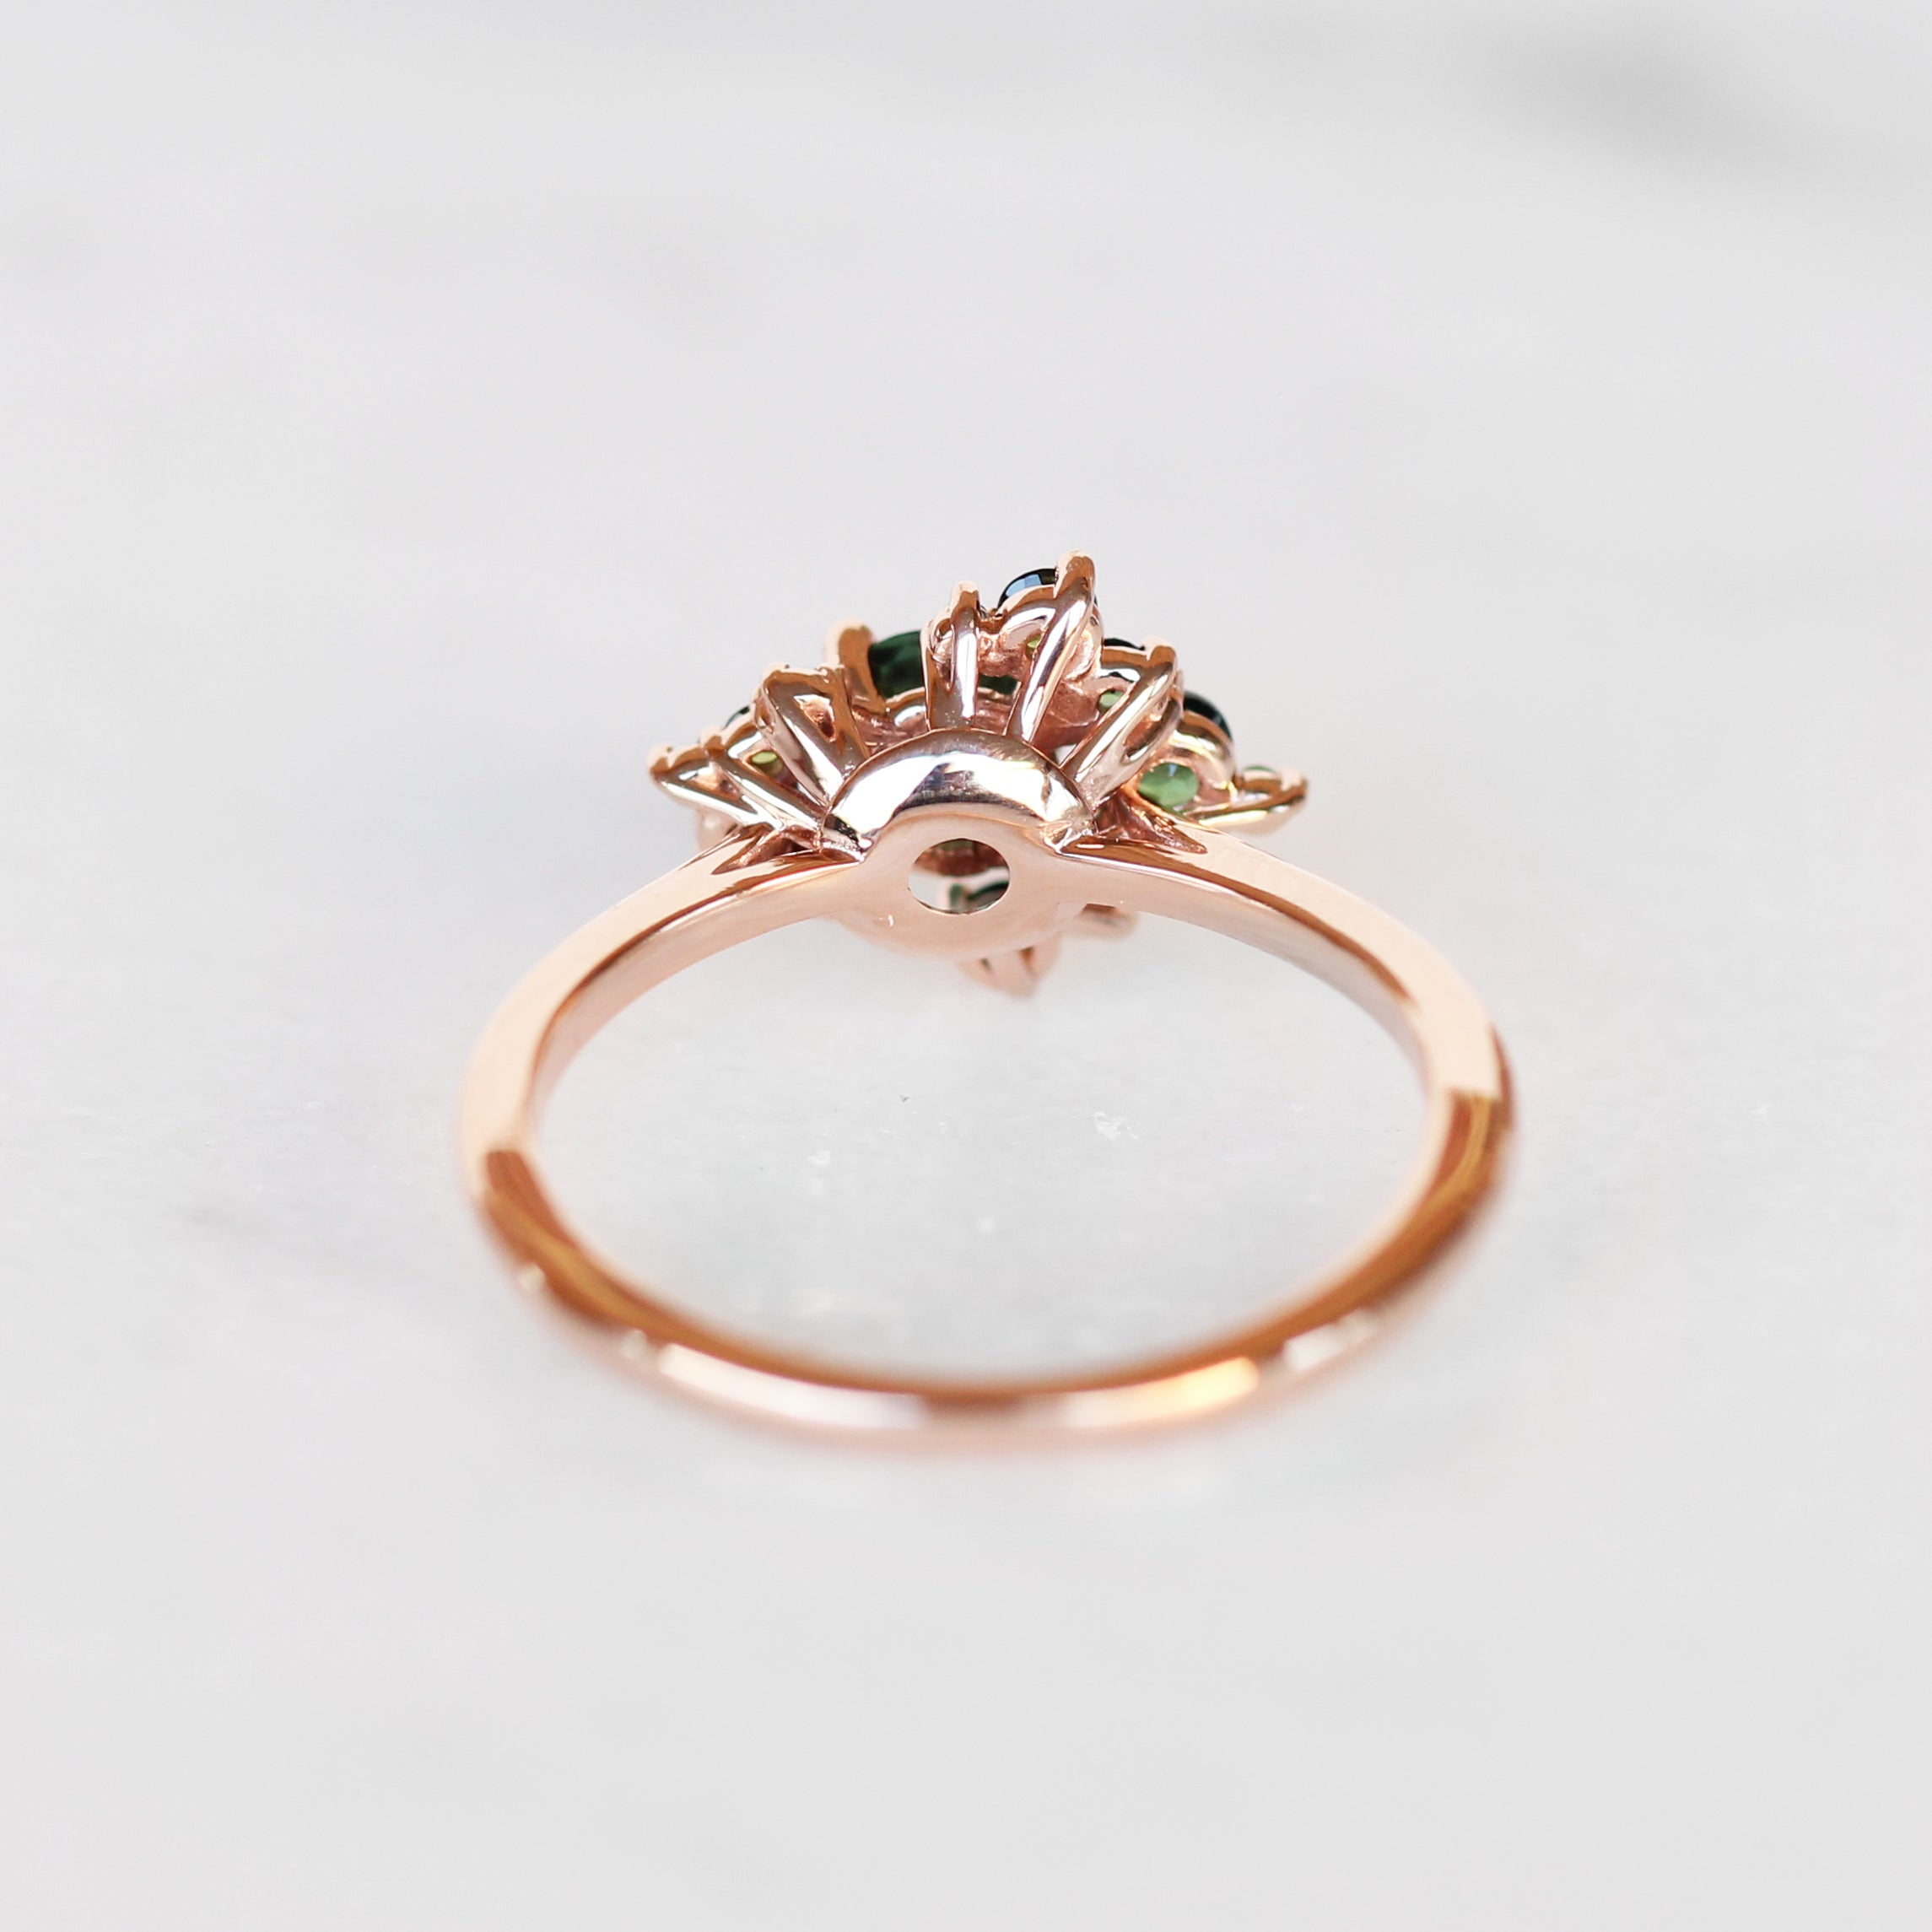 Orion Ring with all Tourmaline - Cluster ring - Celestial Diamonds ® by Midwinter Co.